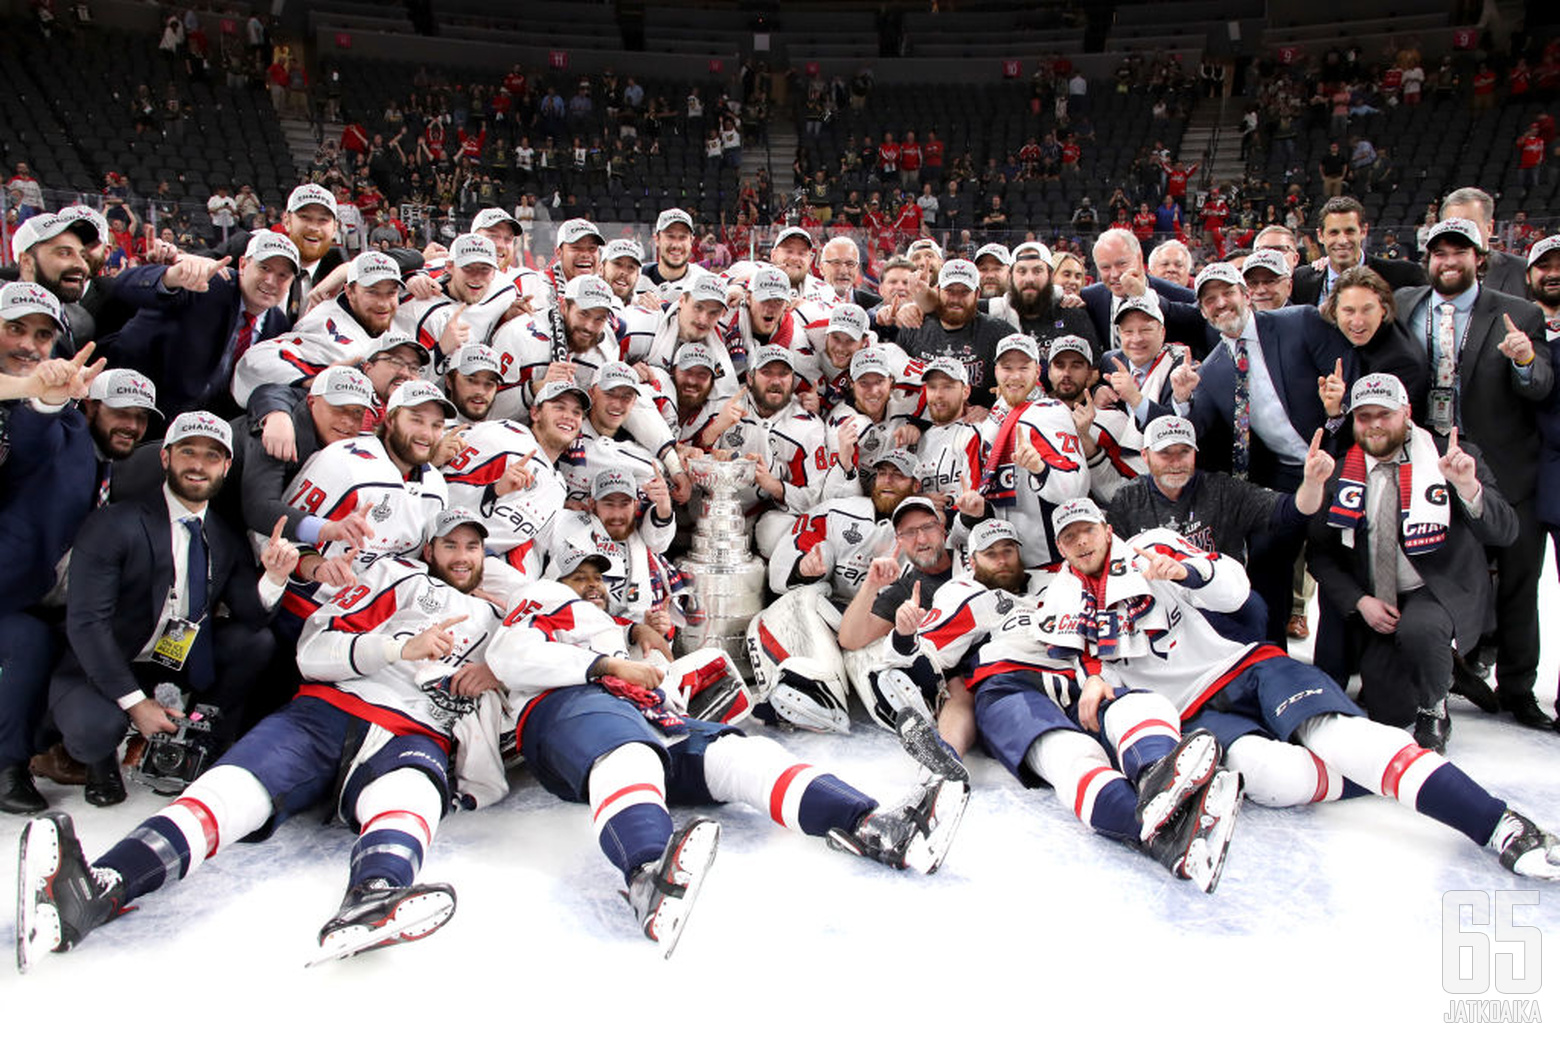 LAS VEGAS, NV - JUNE 07:  The Washington Capitals pose for a photo with the Stanley Cup after their team's 4-3 win over the Vegas Golden Knights in Game Five of the 2018 NHL Stanley Cup Final at T-Mobile Arena on June 7, 2018 in Las Vegas, Nevada.  (Photo